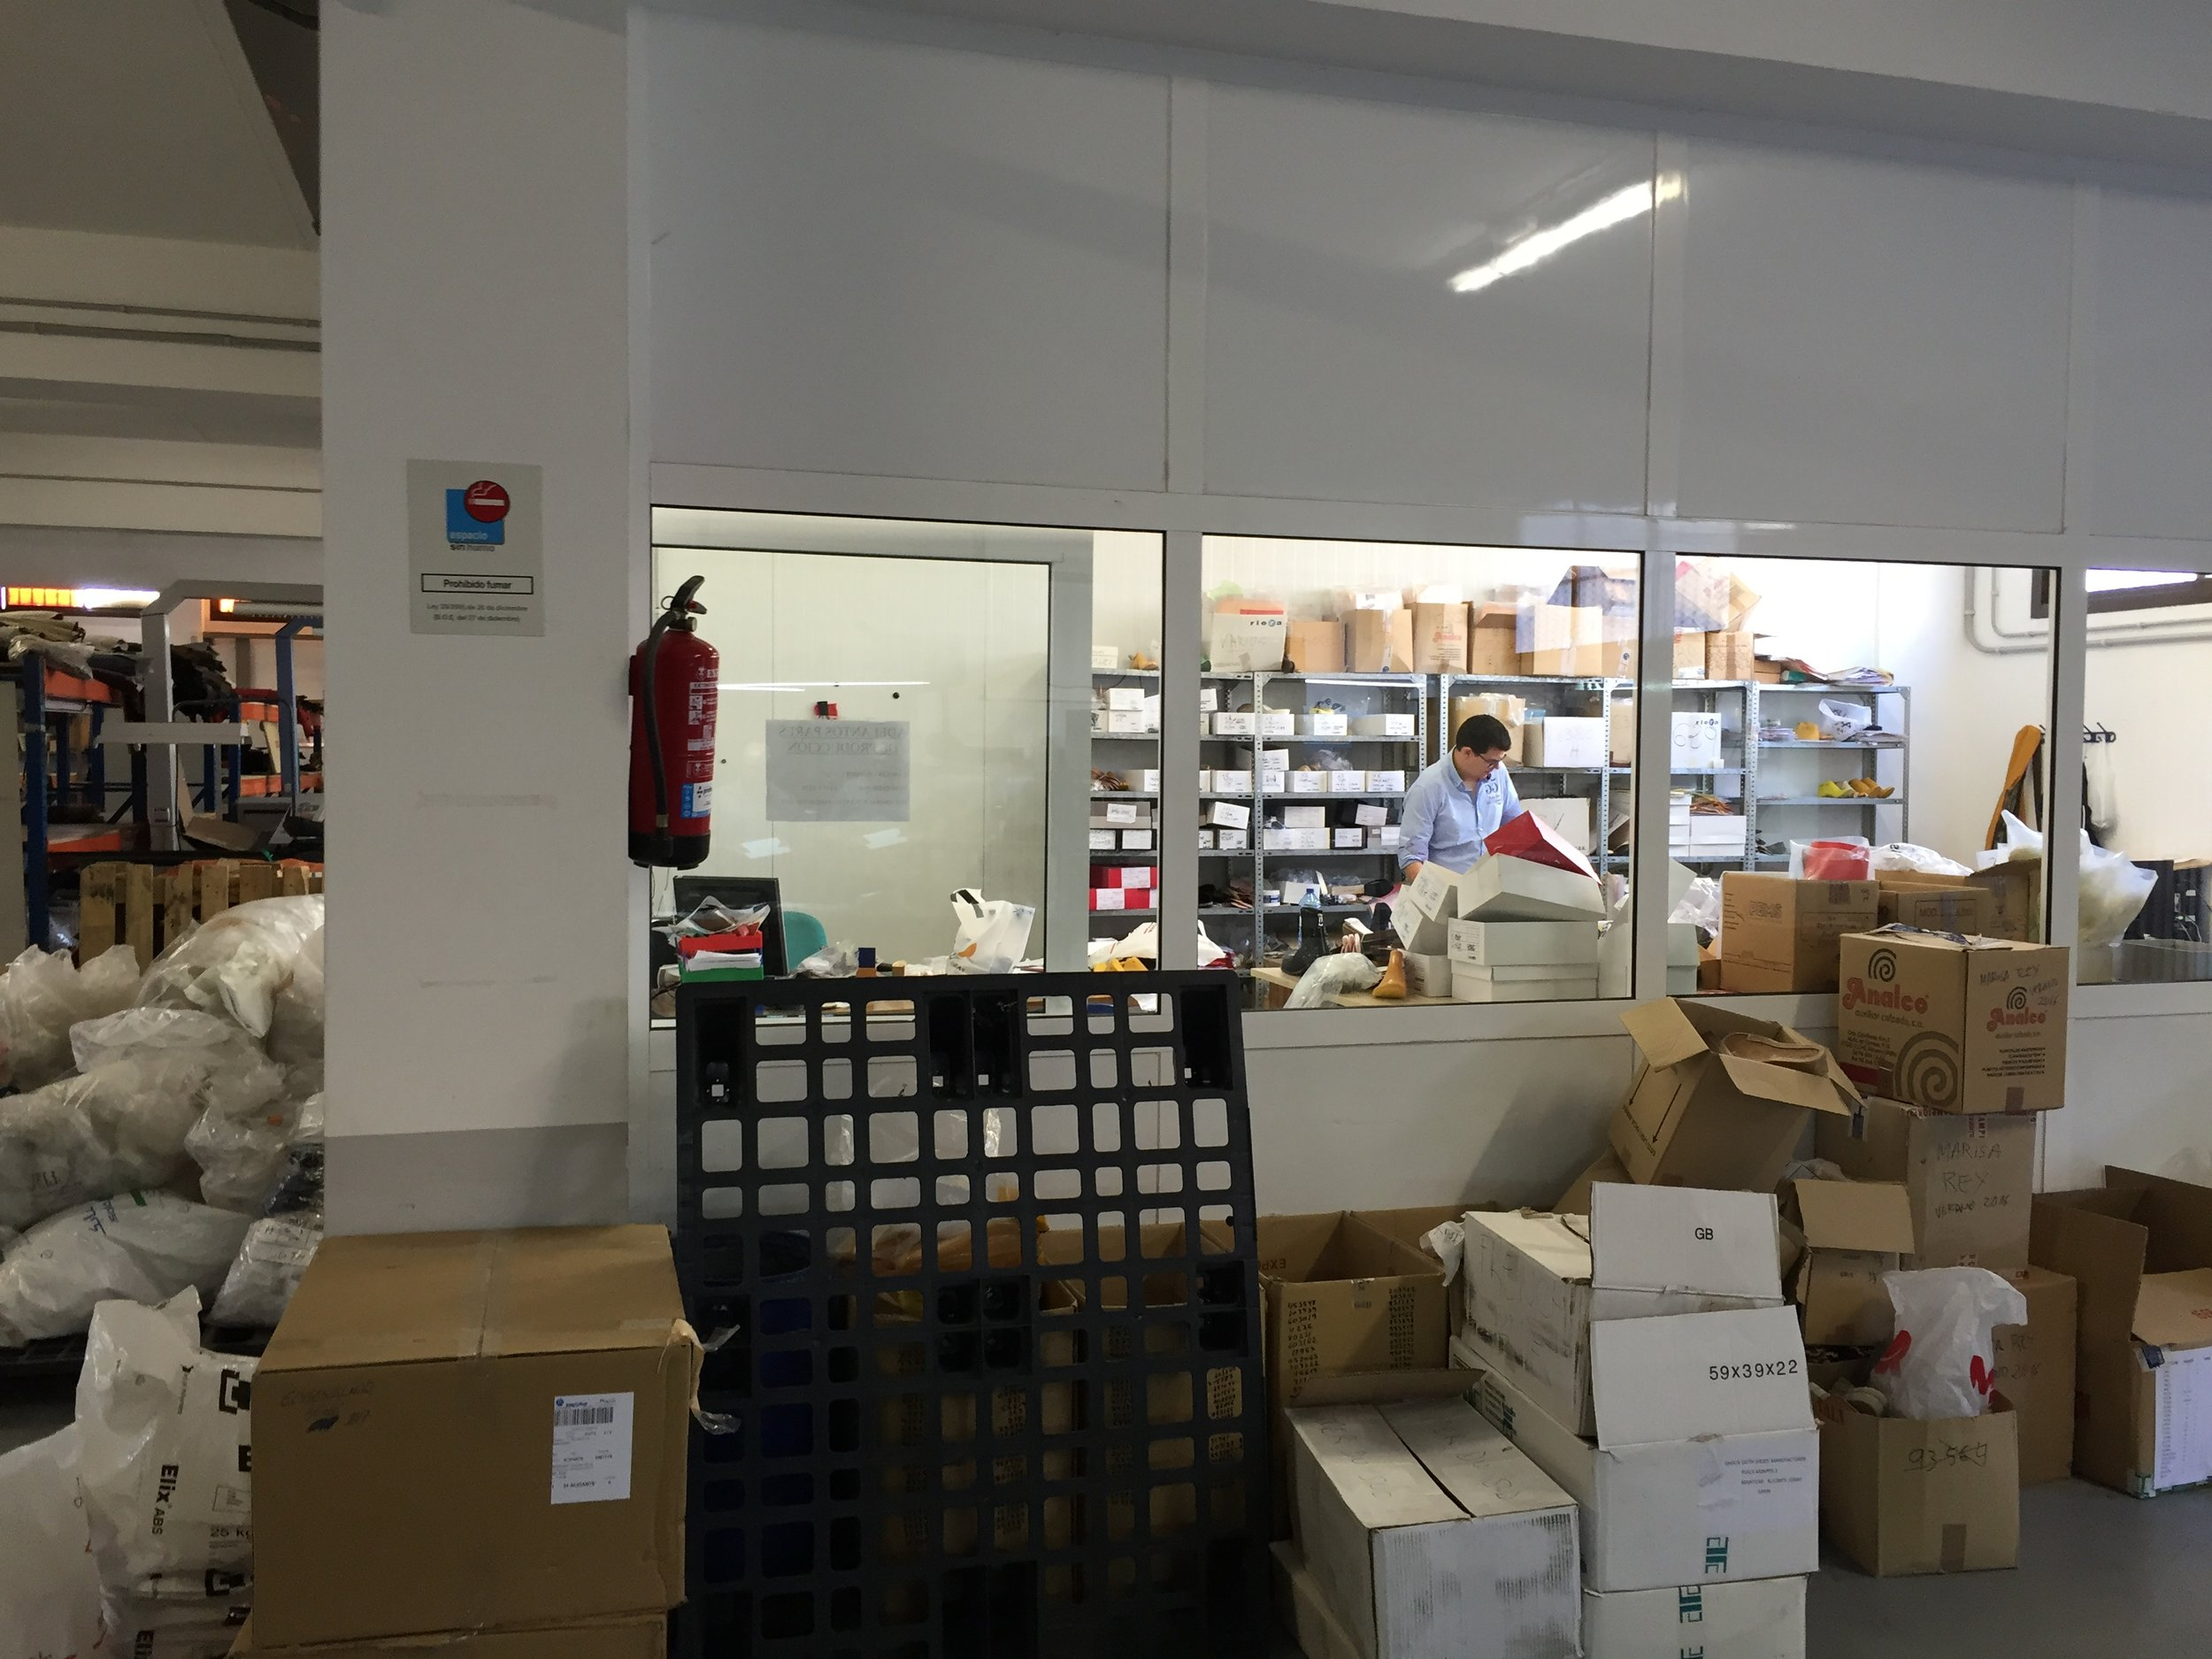 The sample room in Spain